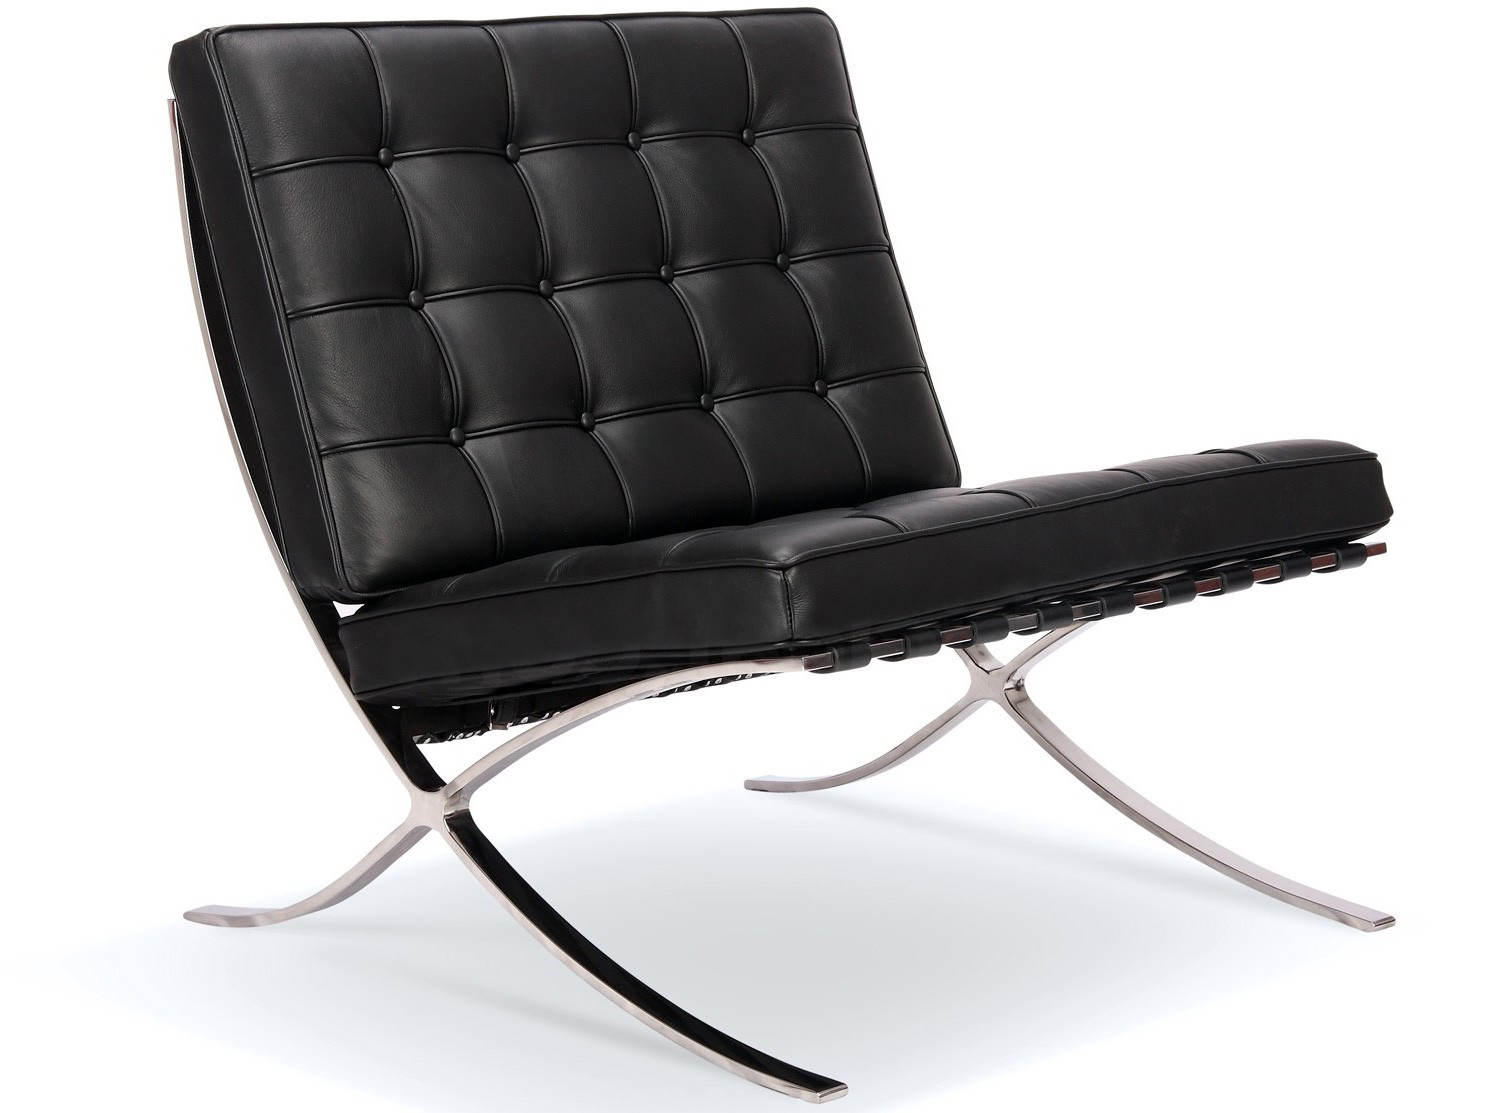 Replica barcelona chair for Mies van der rohe replica